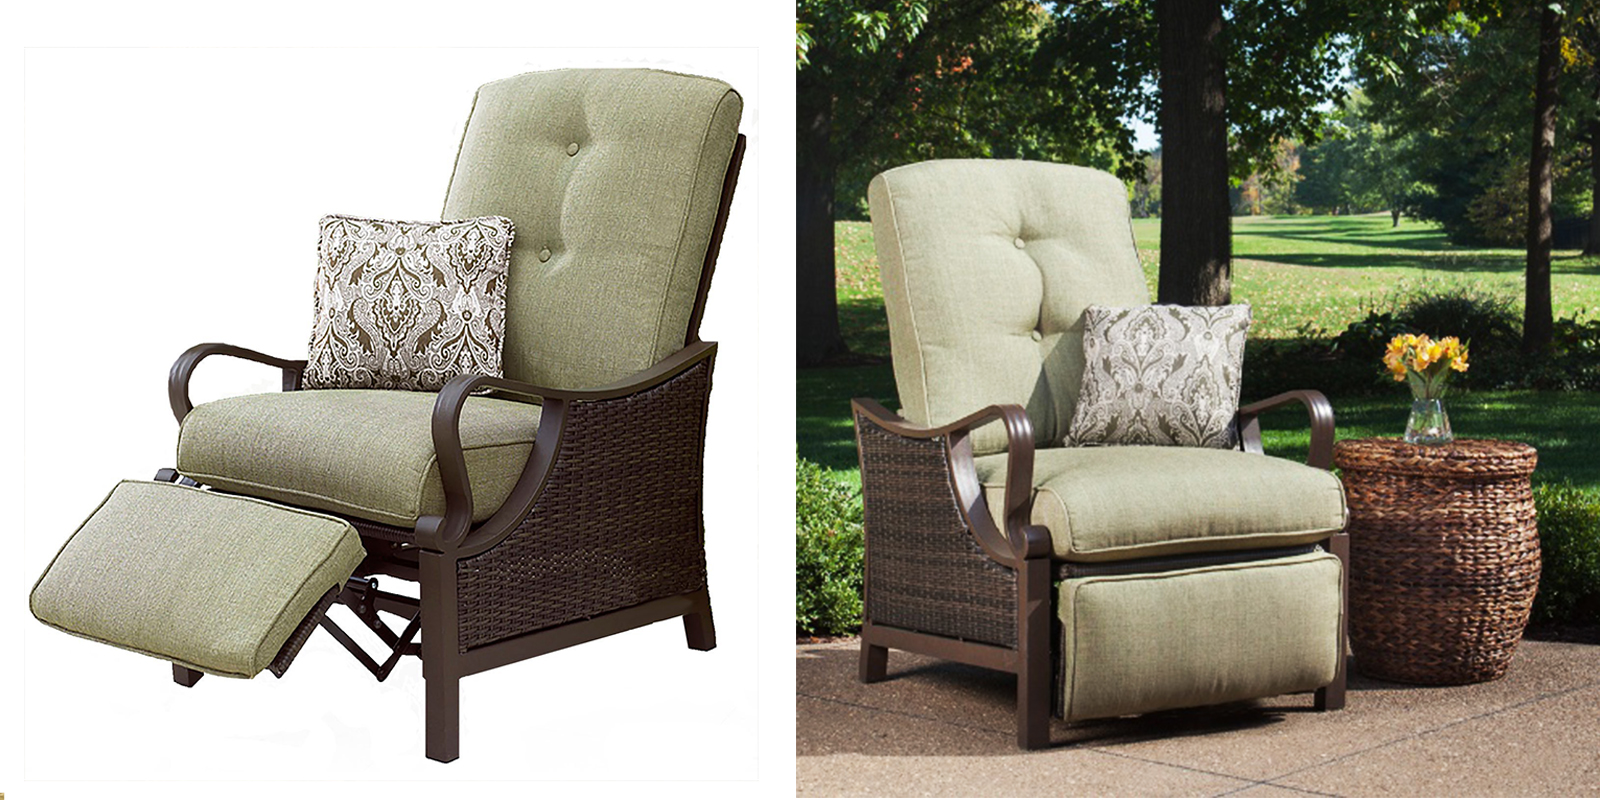 25 best patio chairs to buy right now for Reclining lawn chair